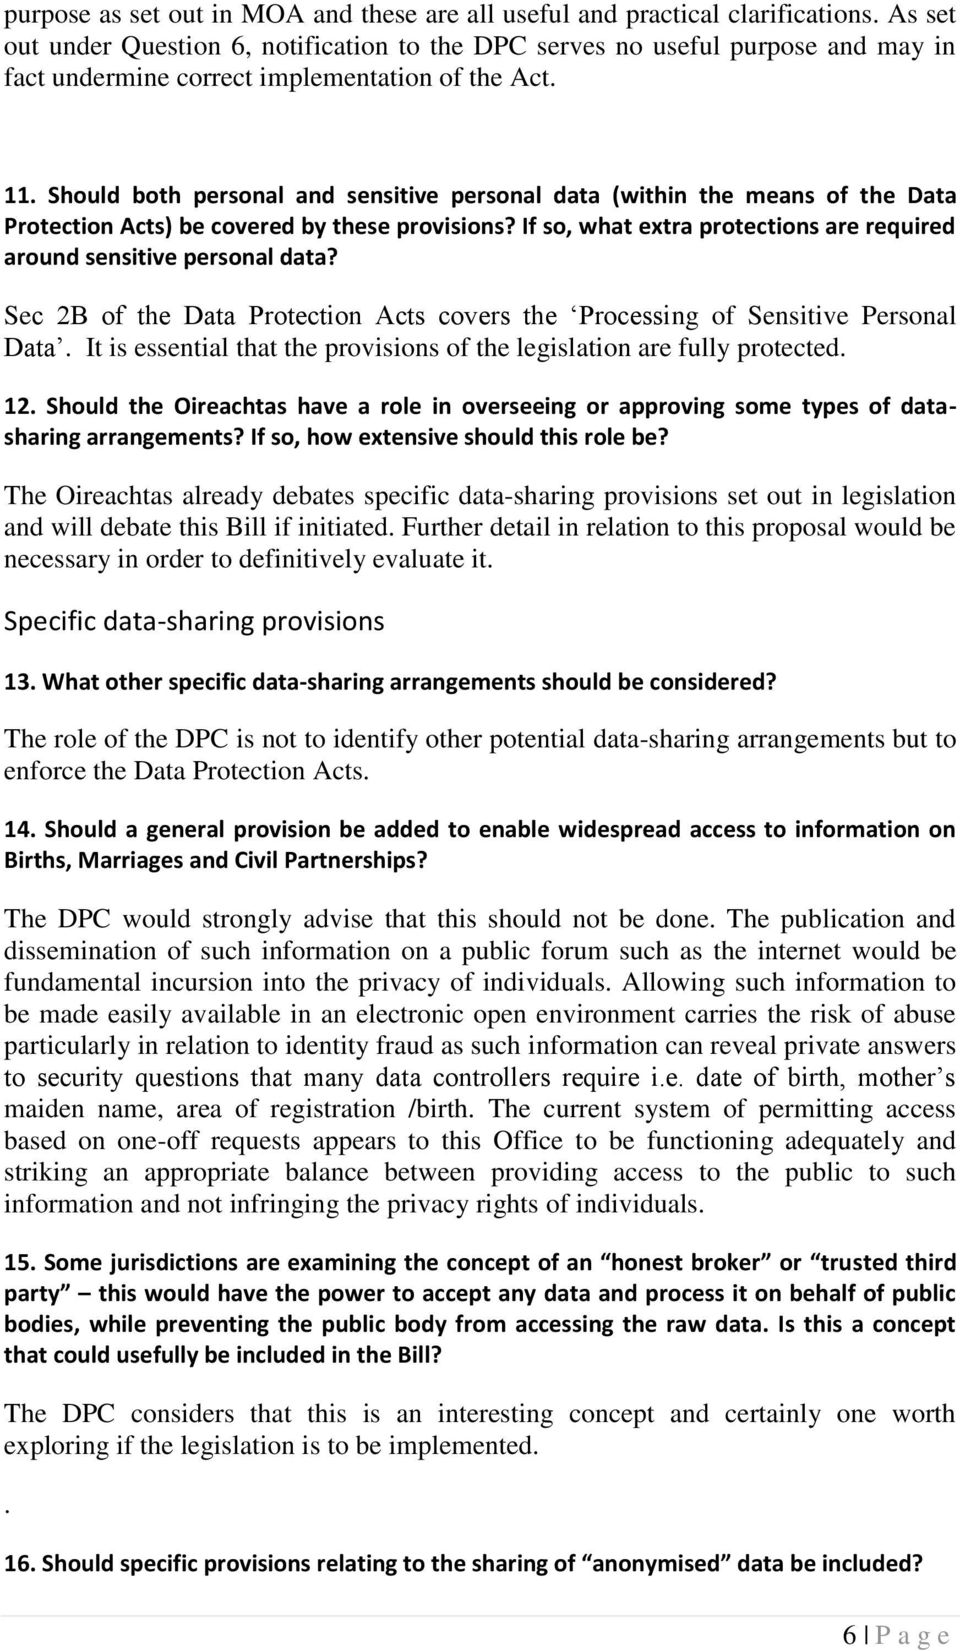 Should both personal and sensitive personal data (within the means of the Data Protection Acts) be covered by these provisions?